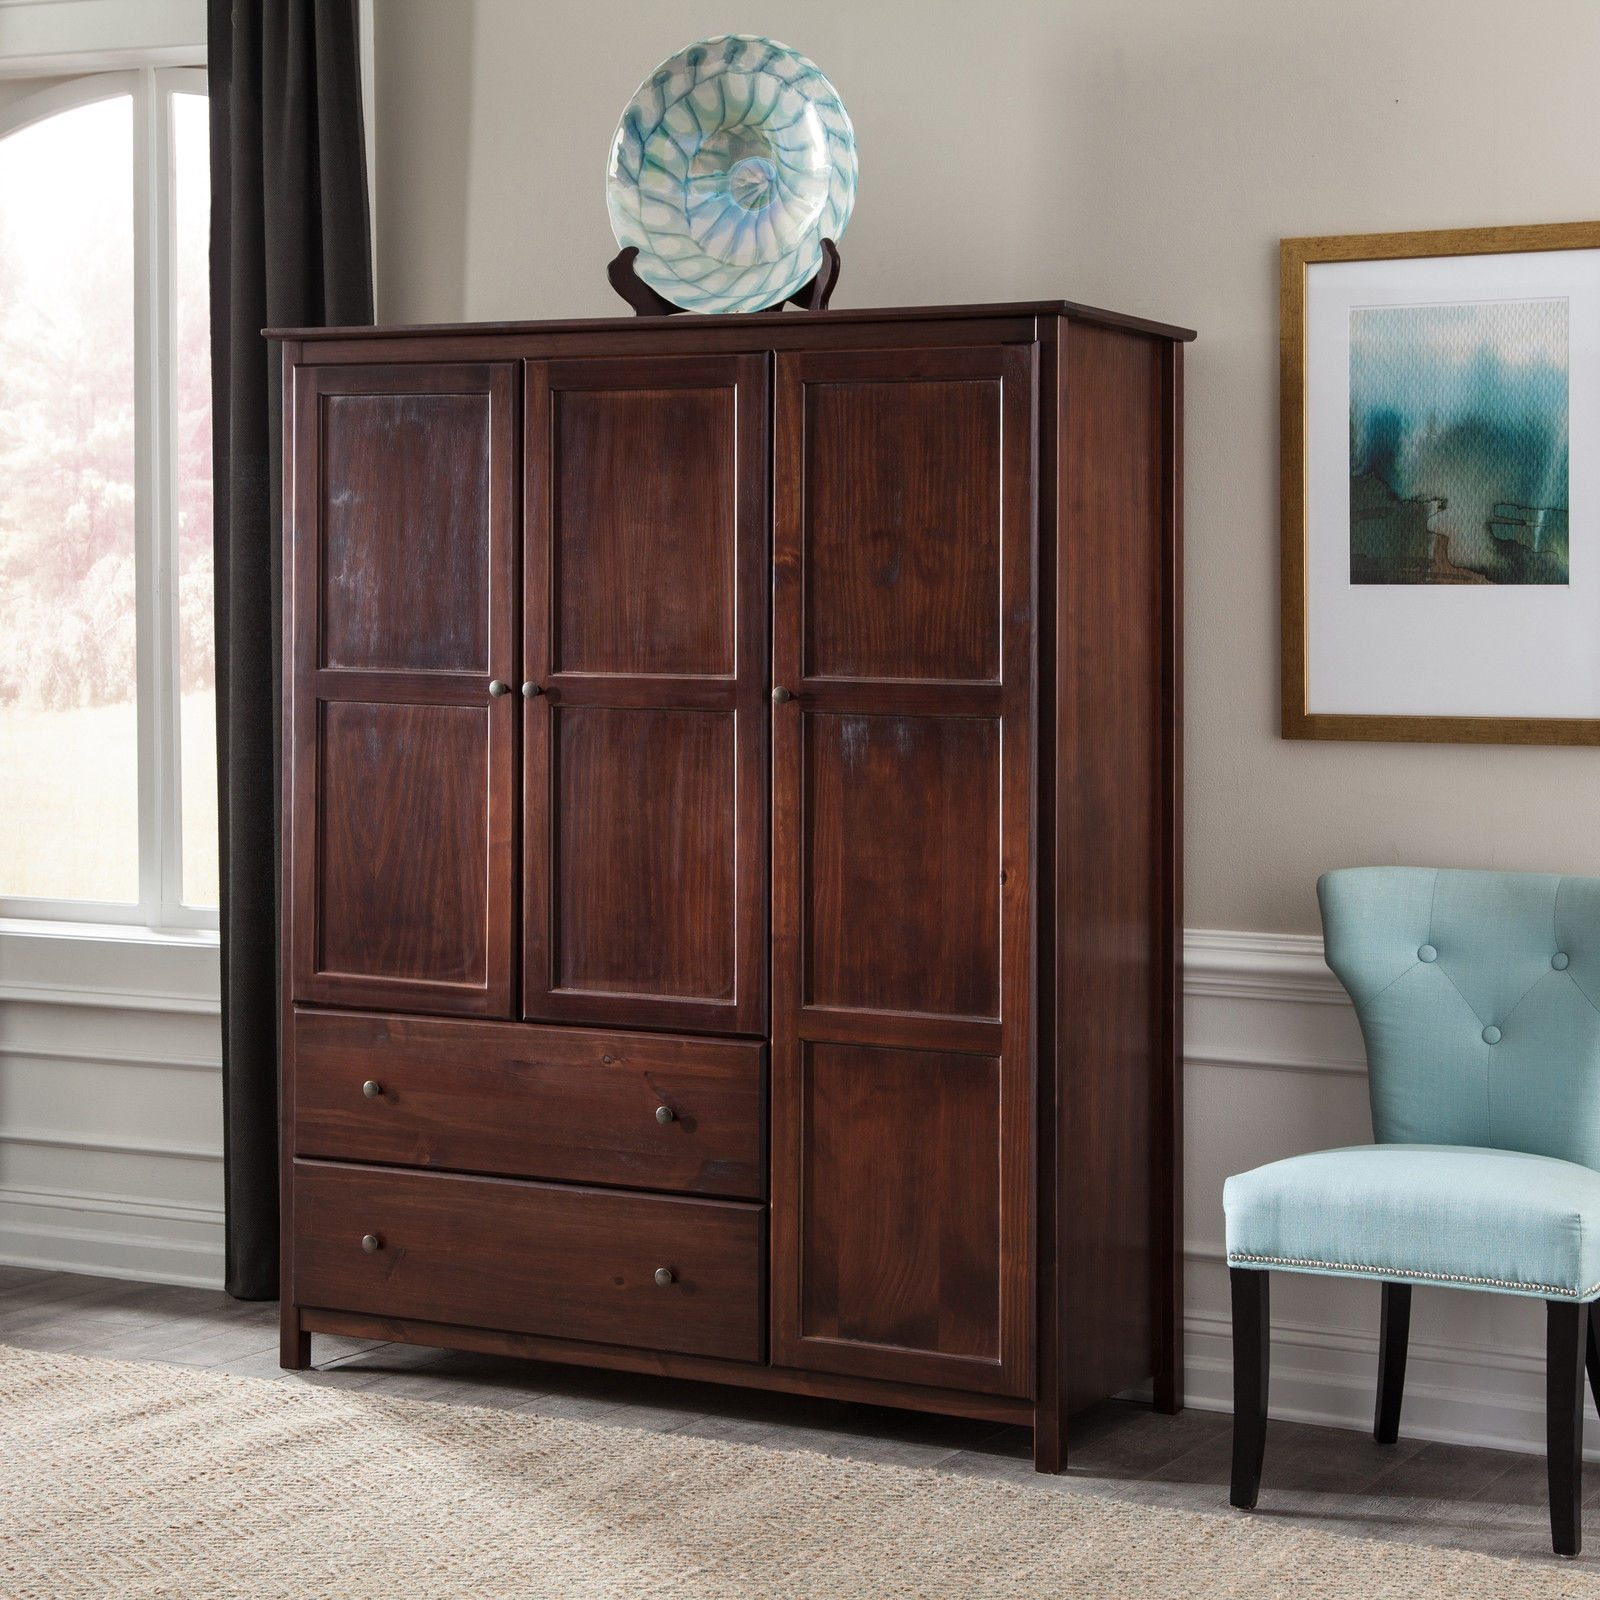 Armoire Furniture | How Do You Spell Armoire | Mirrored Armoire Furniture